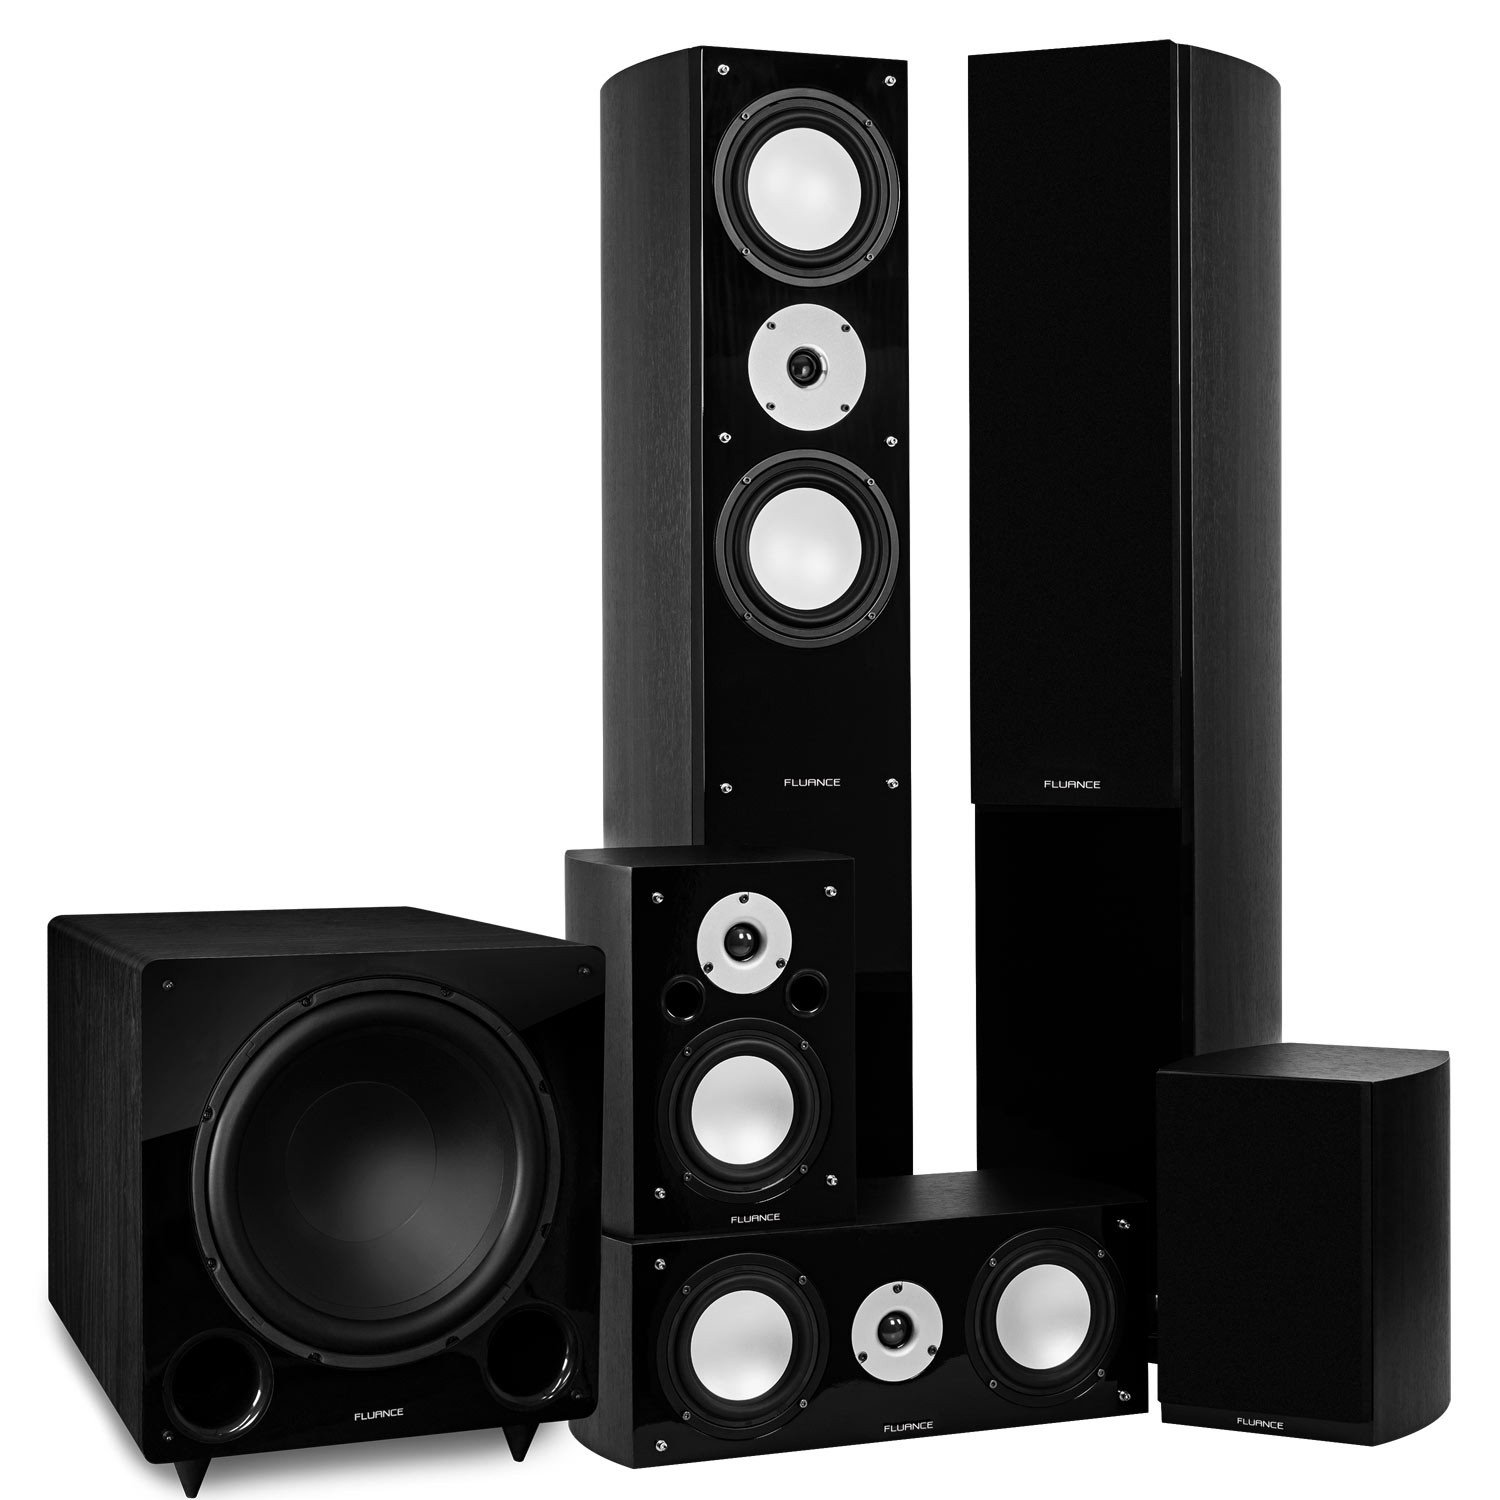 Reference Series Black Ash Surround Sound Home Theater 5.1 Channel Speaker System